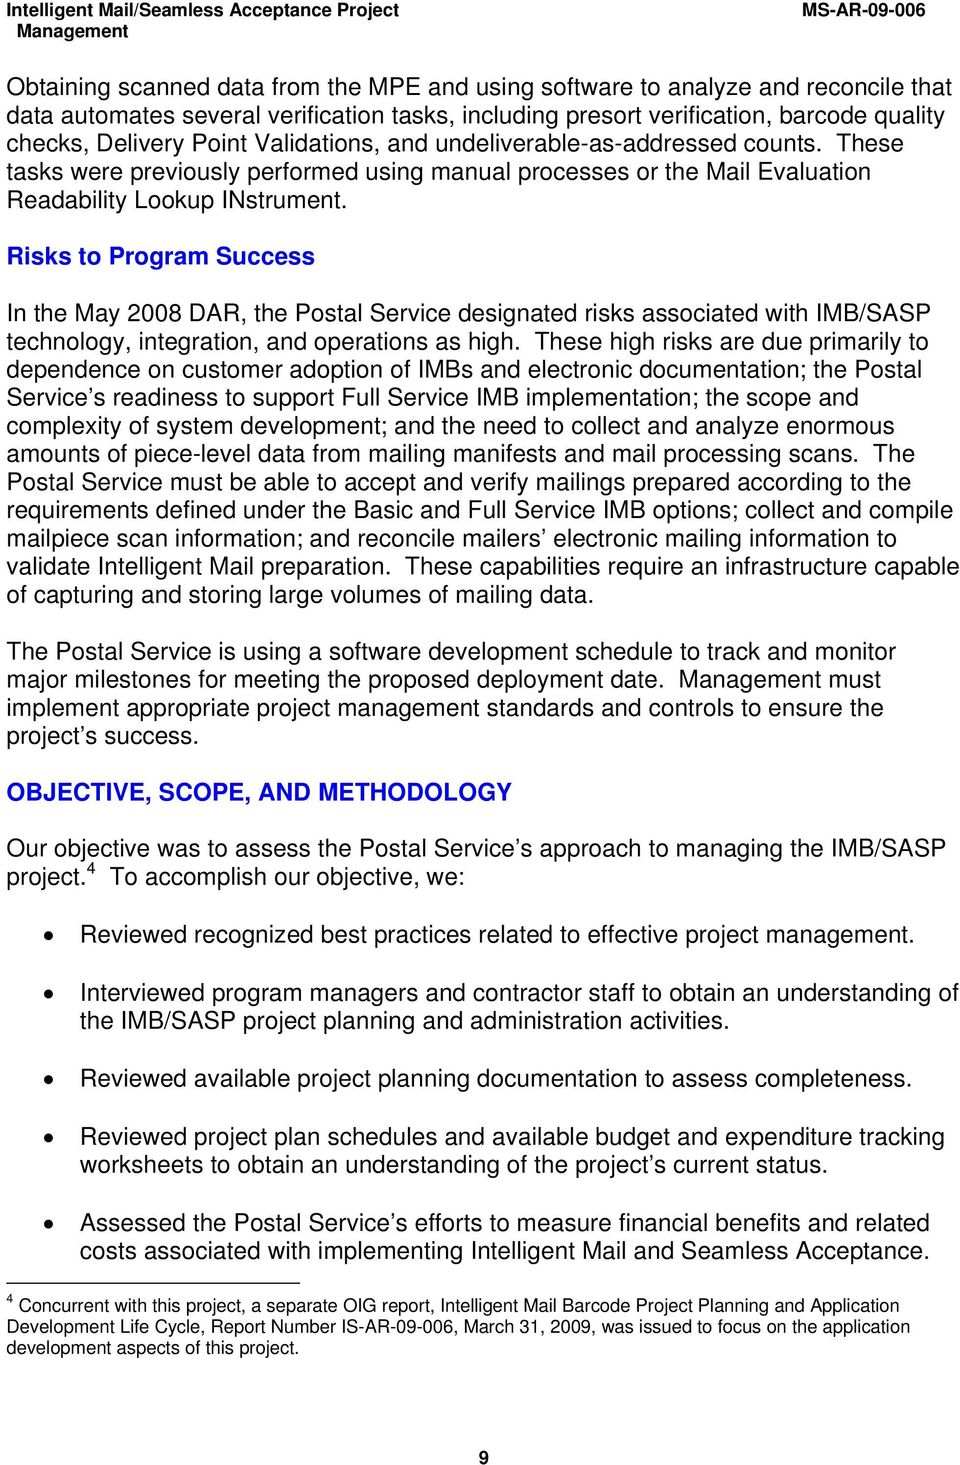 Risks to Program Success In the May 2008 DAR, the Postal Service designated risks associated with IMB/SASP technology, integration, and operations as high.